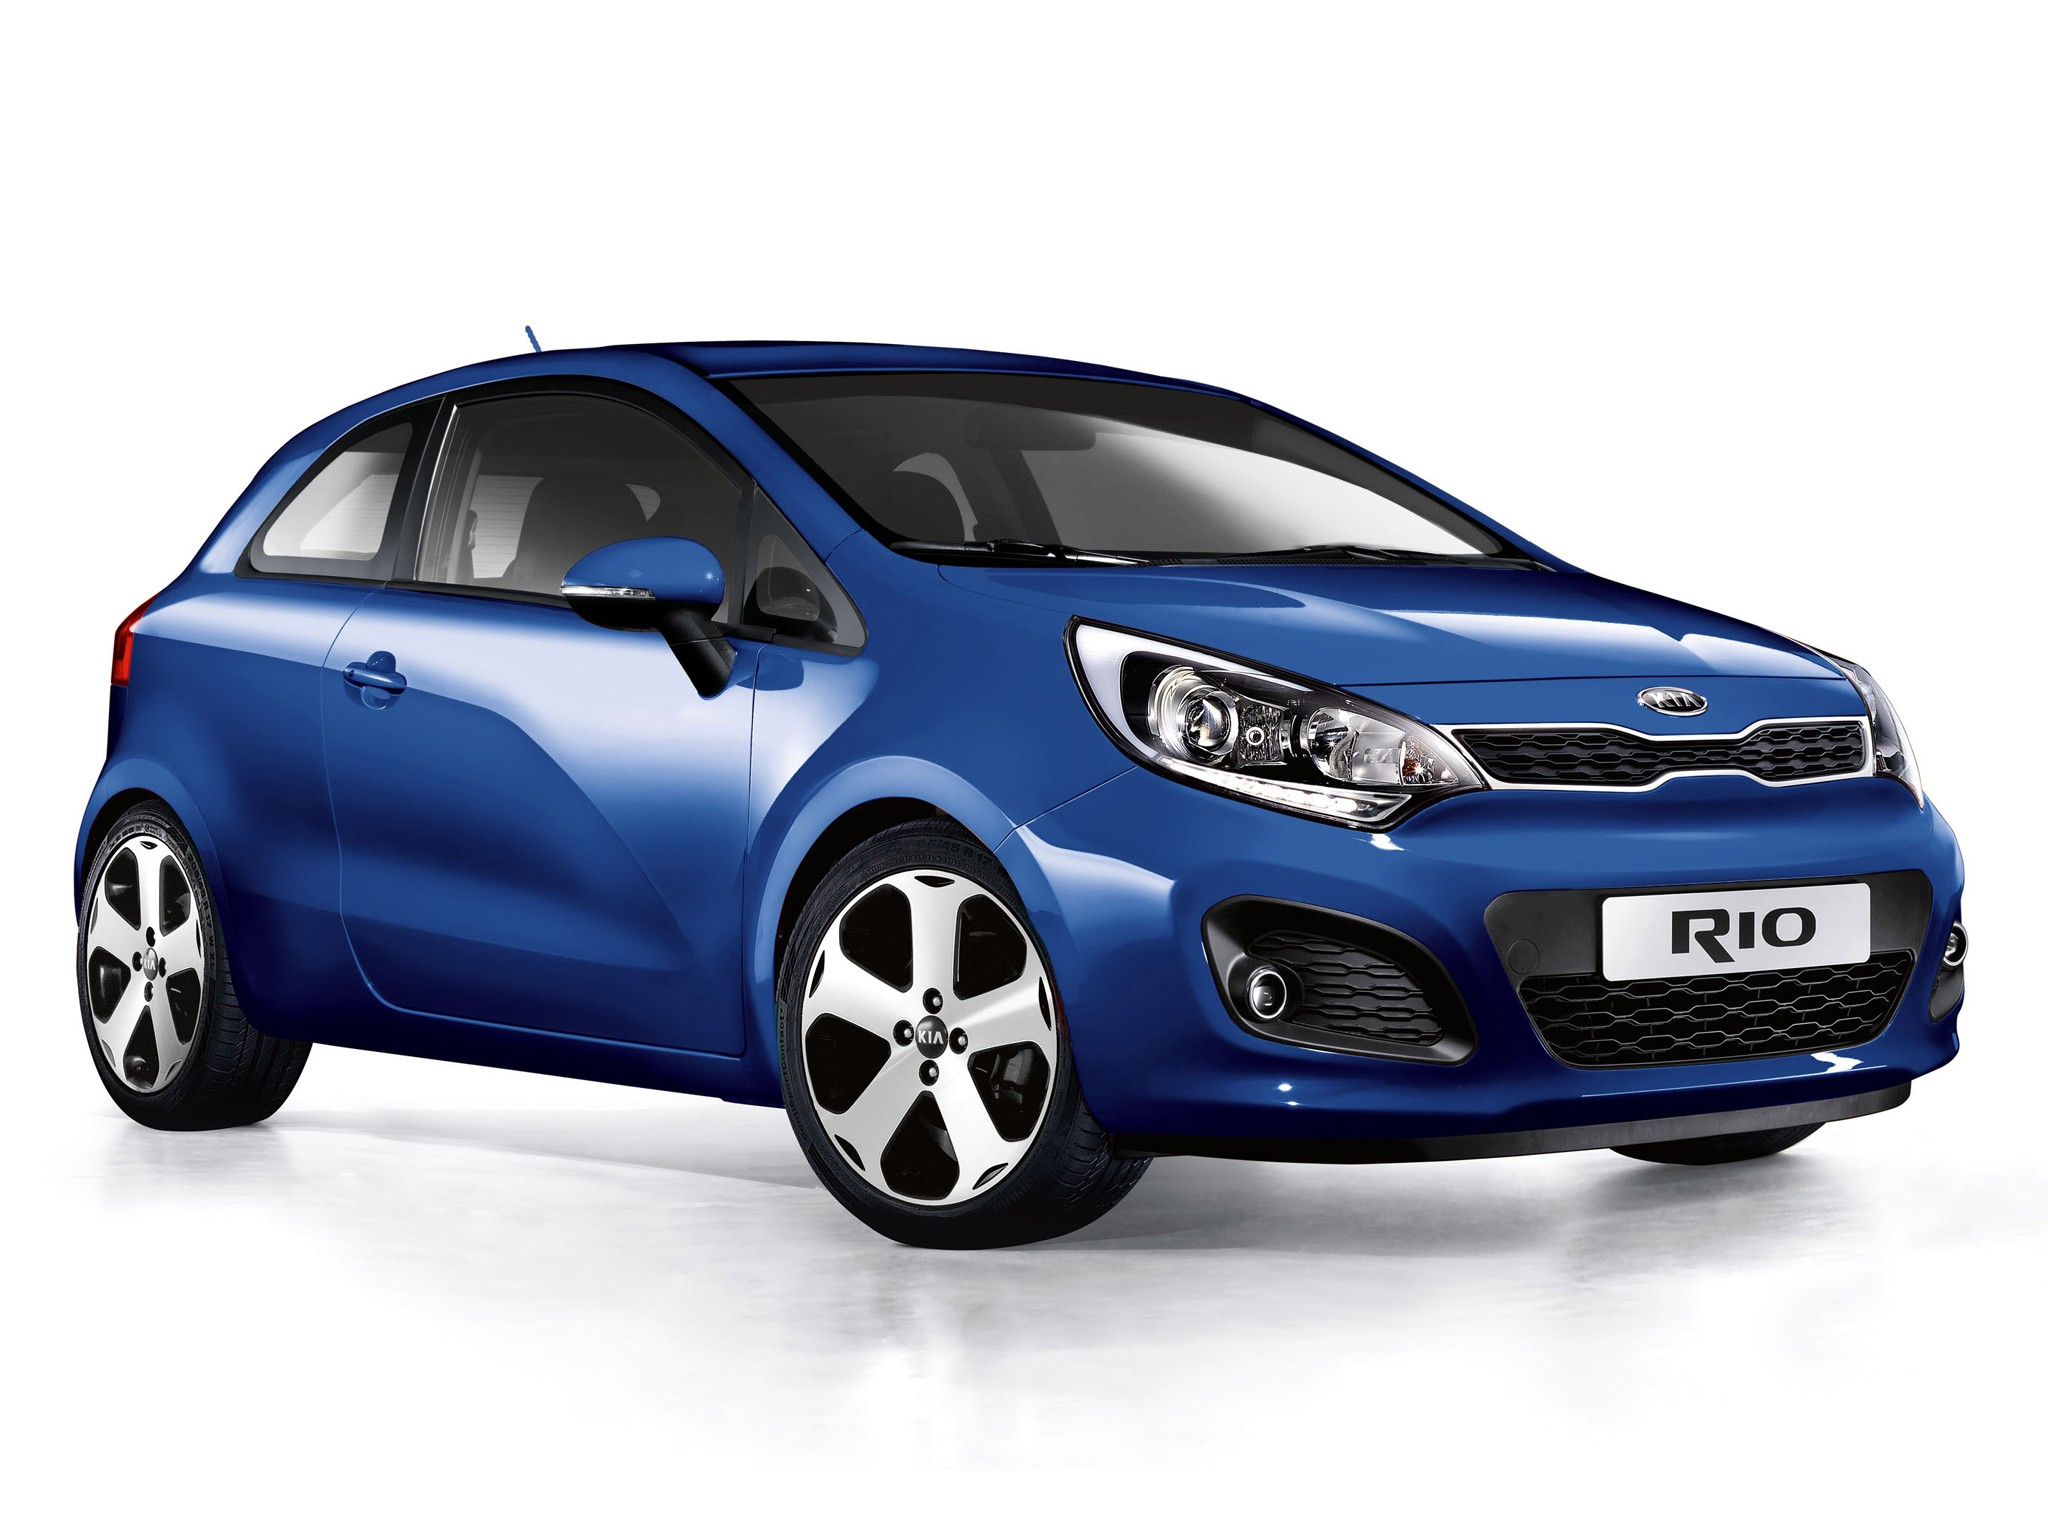 kia rio 3 doors specs 2012 2013 2014 2015 2016 autoevolution. Black Bedroom Furniture Sets. Home Design Ideas